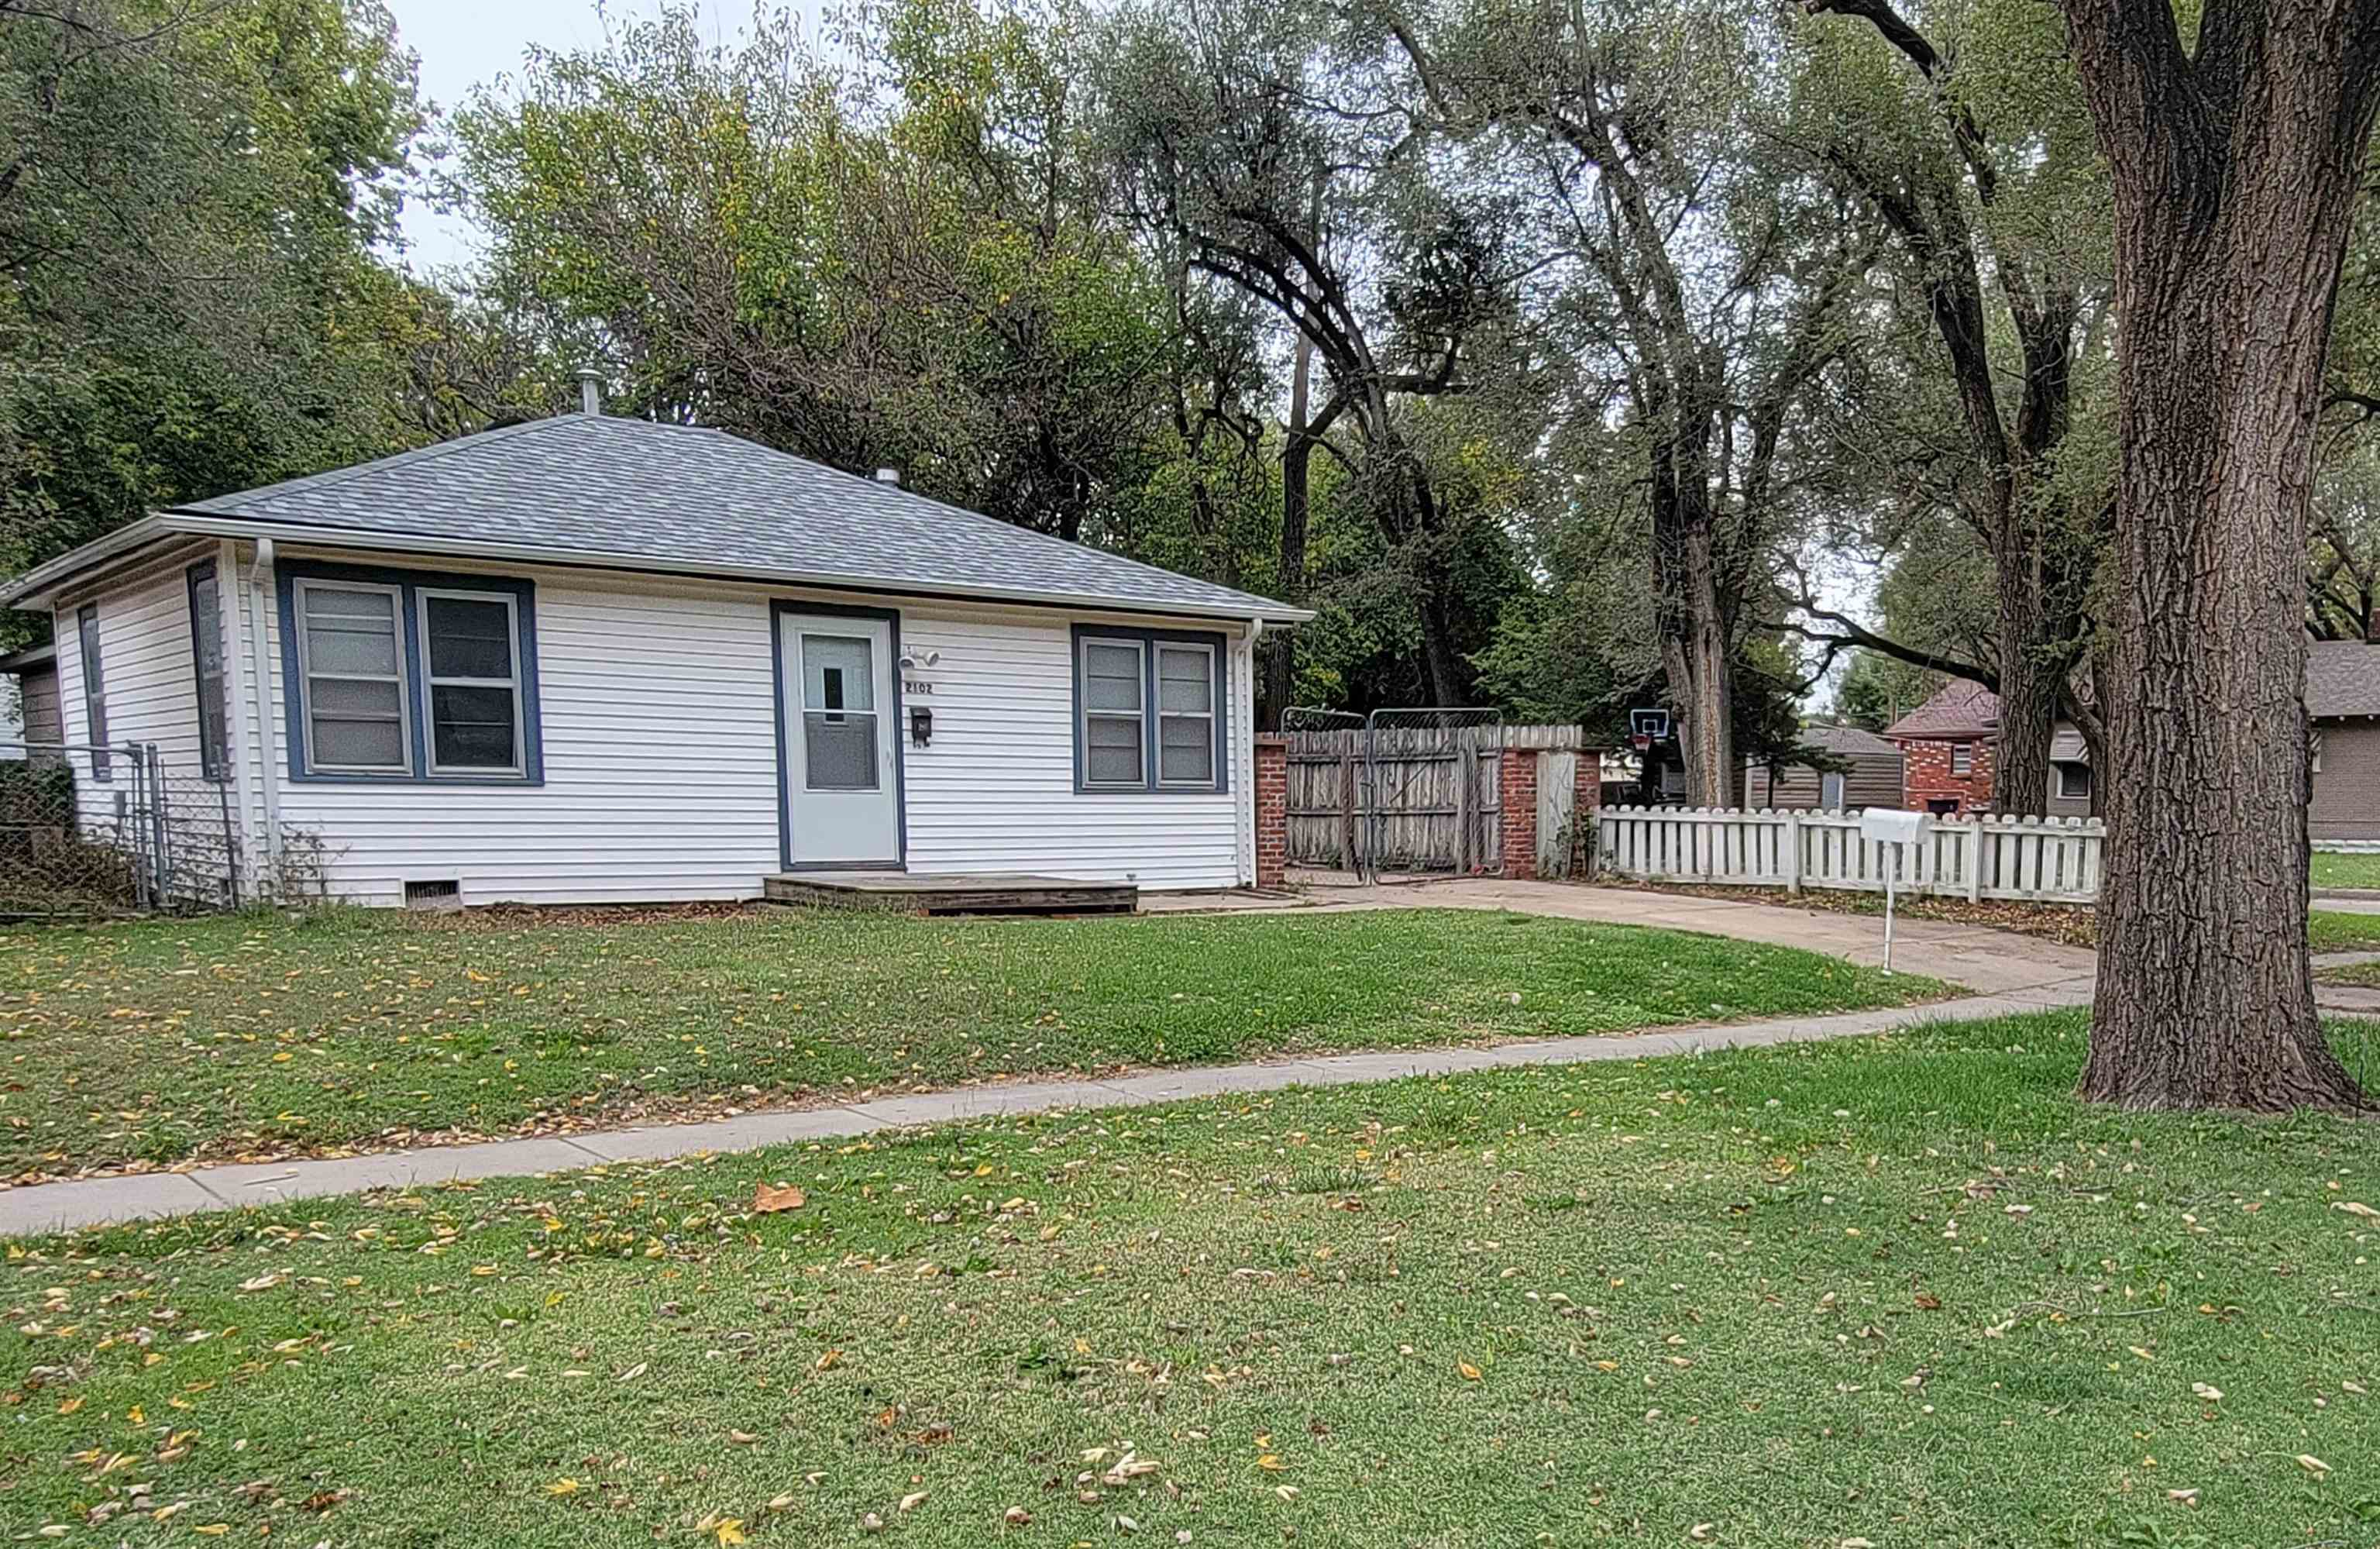 Charming 2 bedroom 1 bath ranch home on corner lot, easy access to Kellogg and move in ready. This p